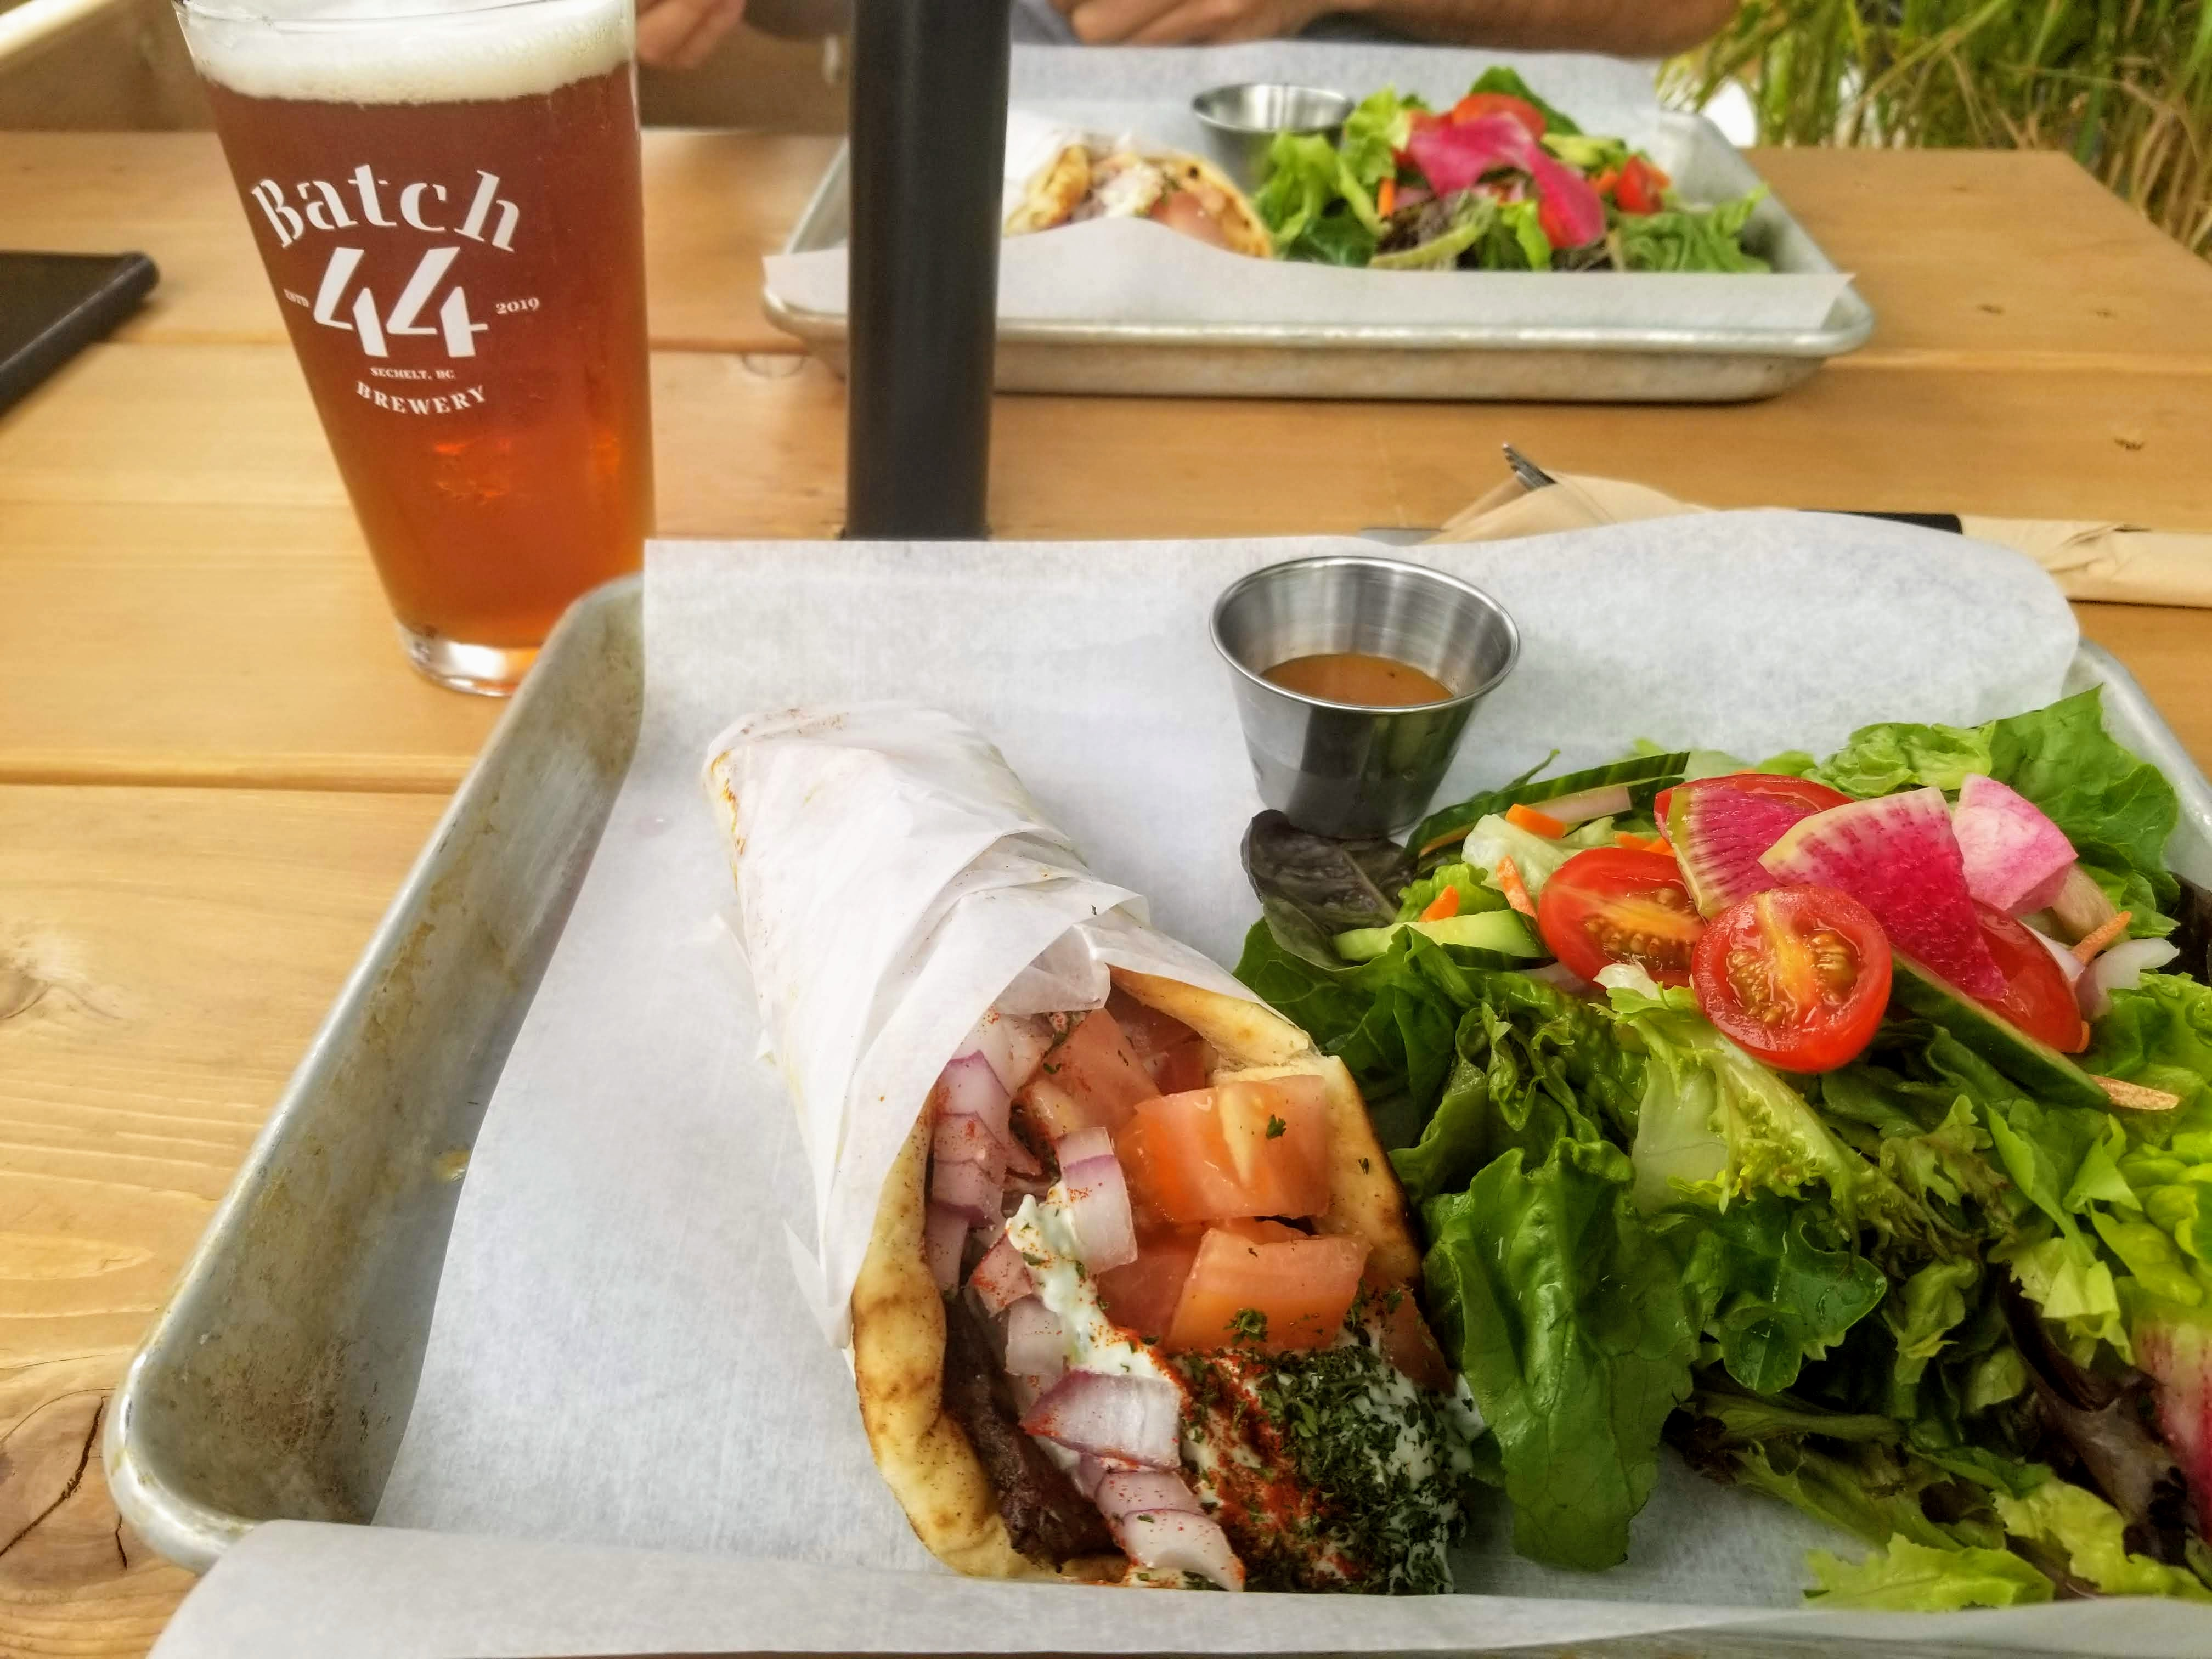 Batch 44 in Sechelt- Beer and donair with salad